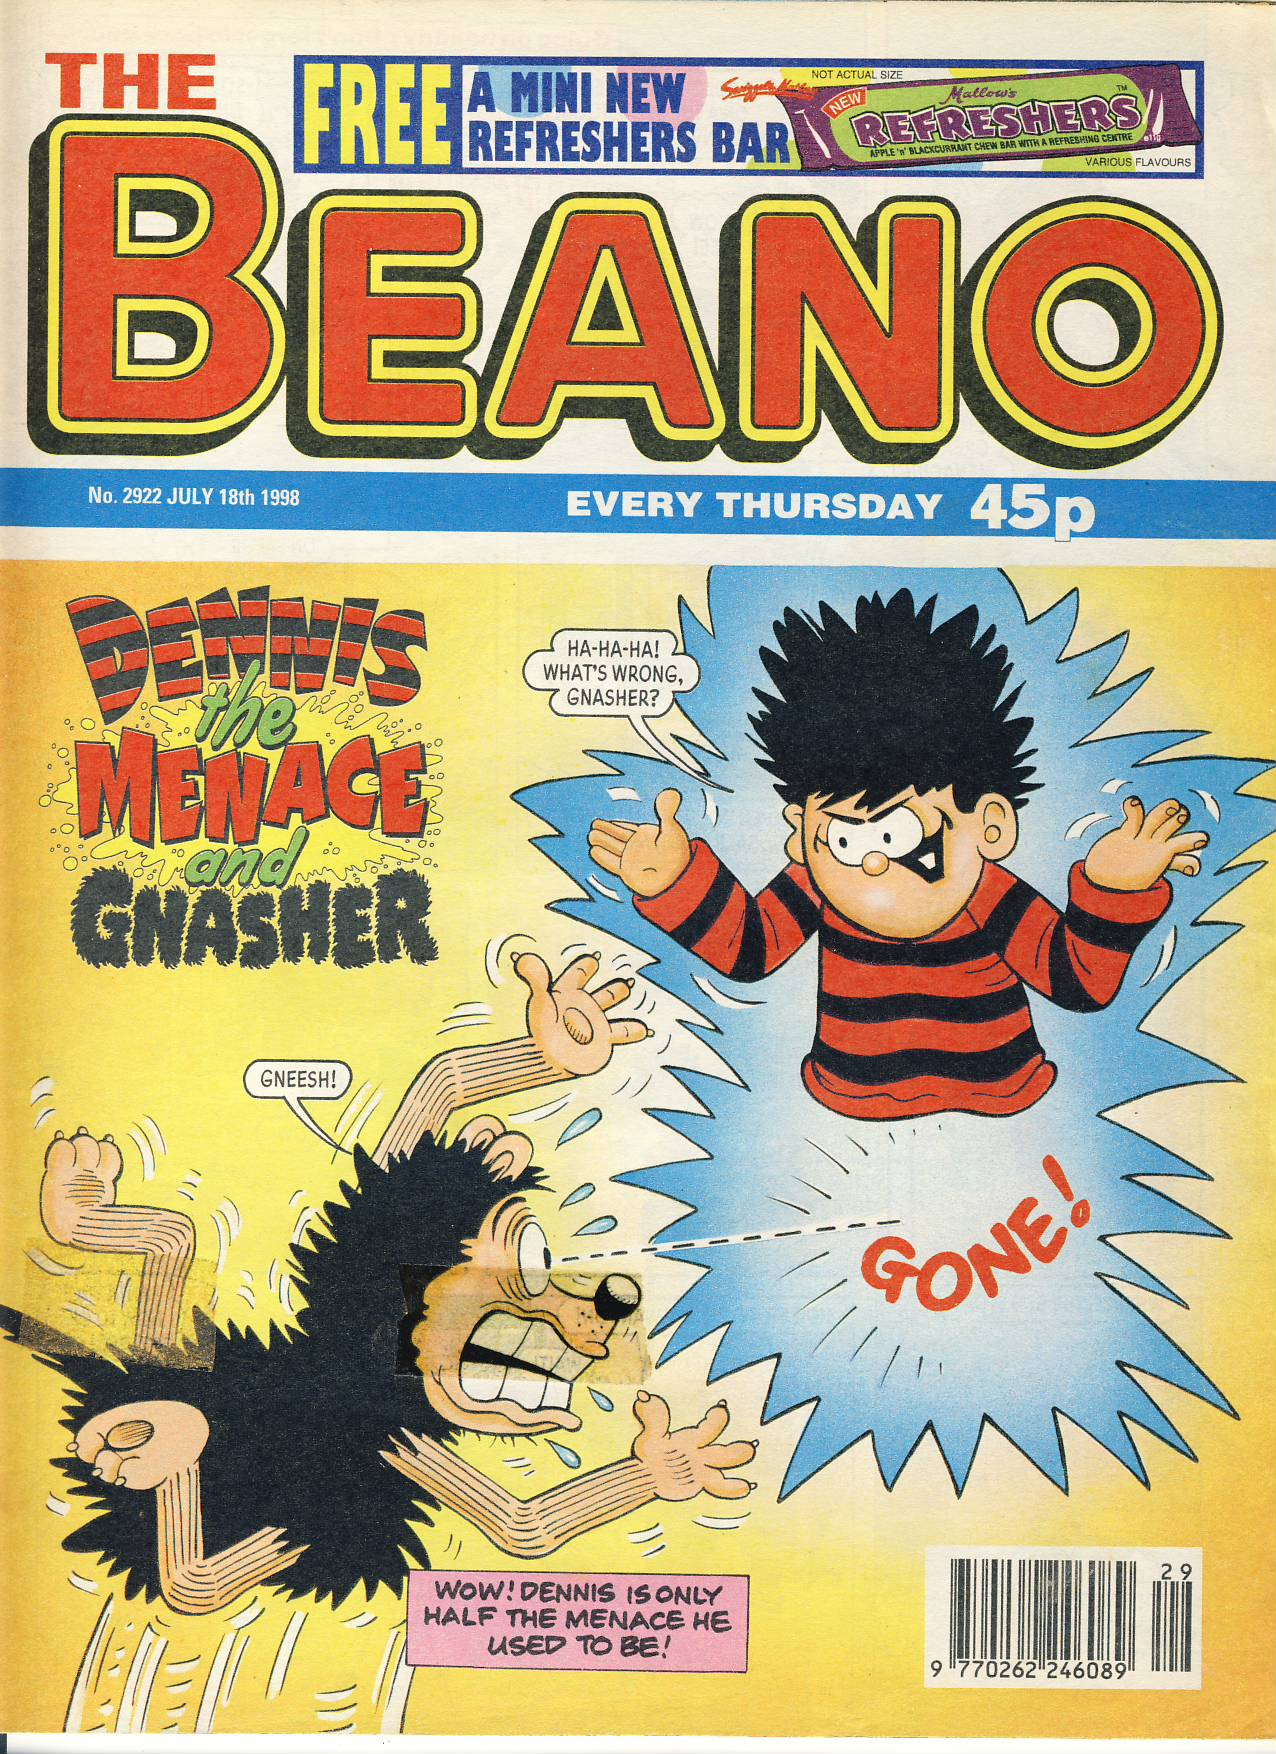 1998 July 18th BEANO vintage comic Good Gift Christmas Present Birthday Anniversary ref228 a pre-owned item in very good read condition.